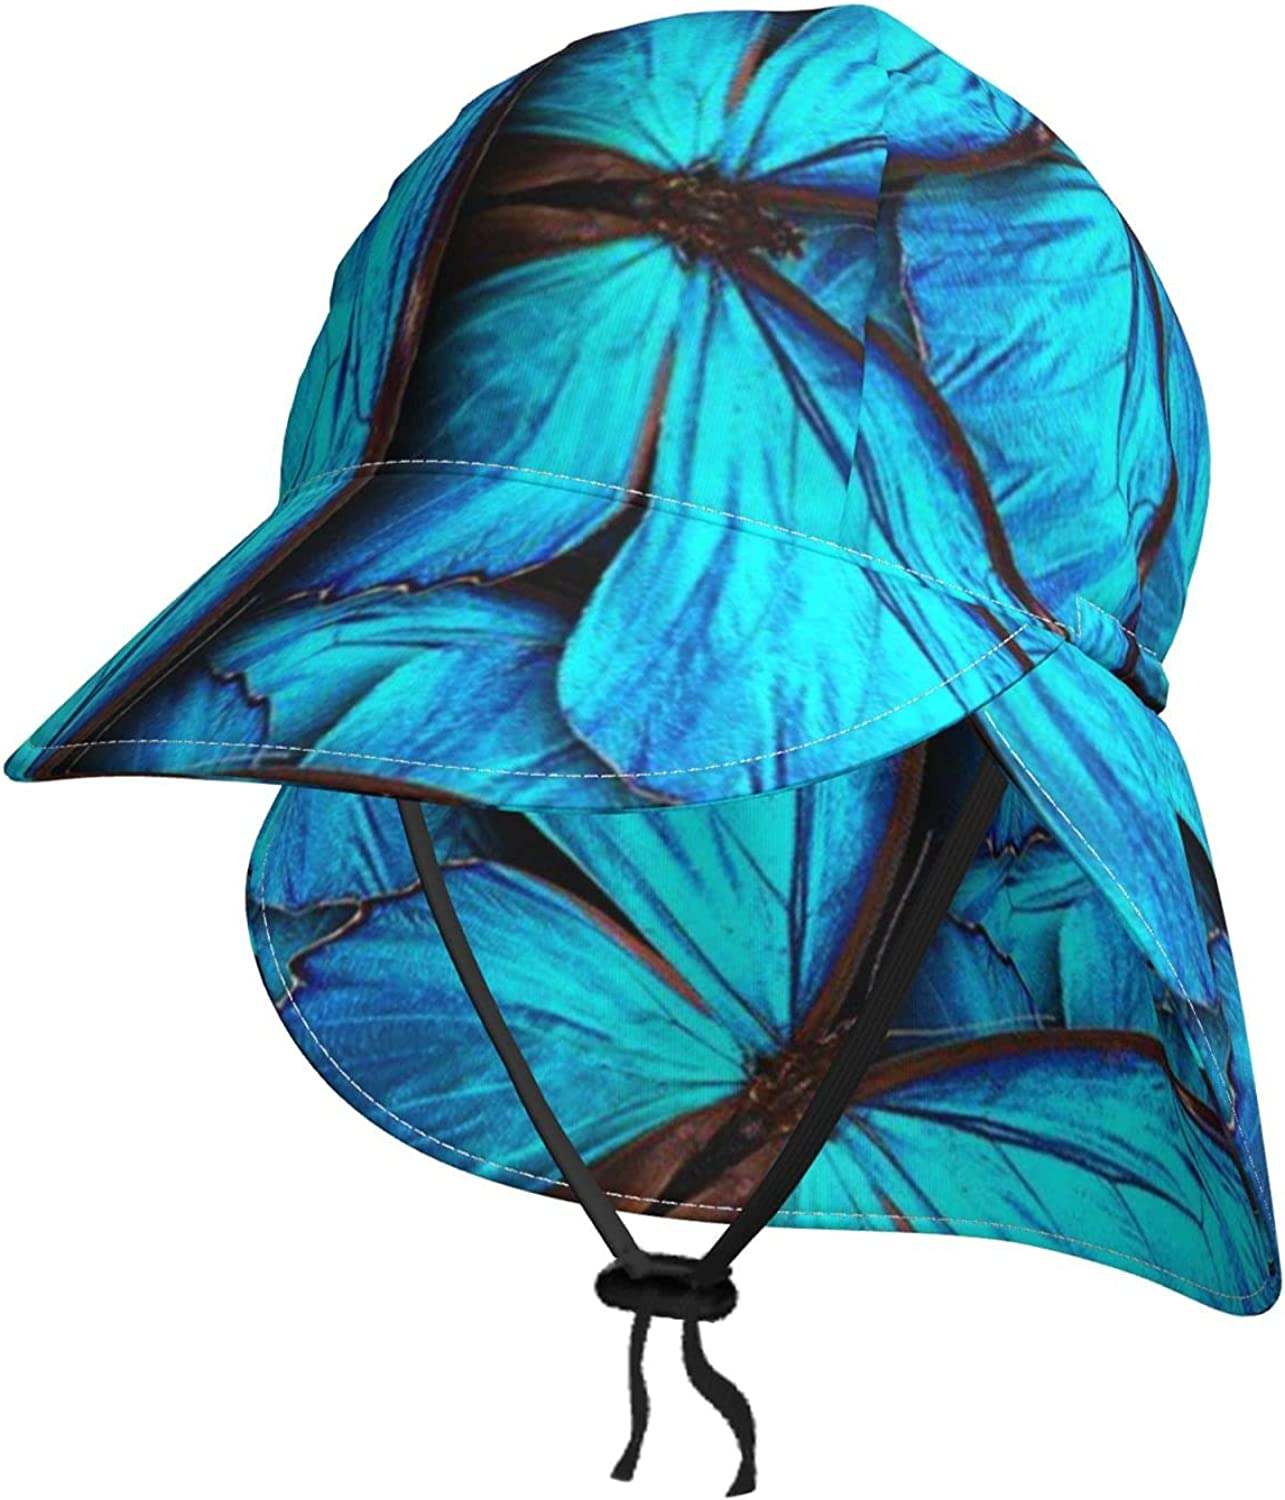 Many Blue Butterfly Kids Sun online shopping Hat Summer Flap B Neck with Very popular